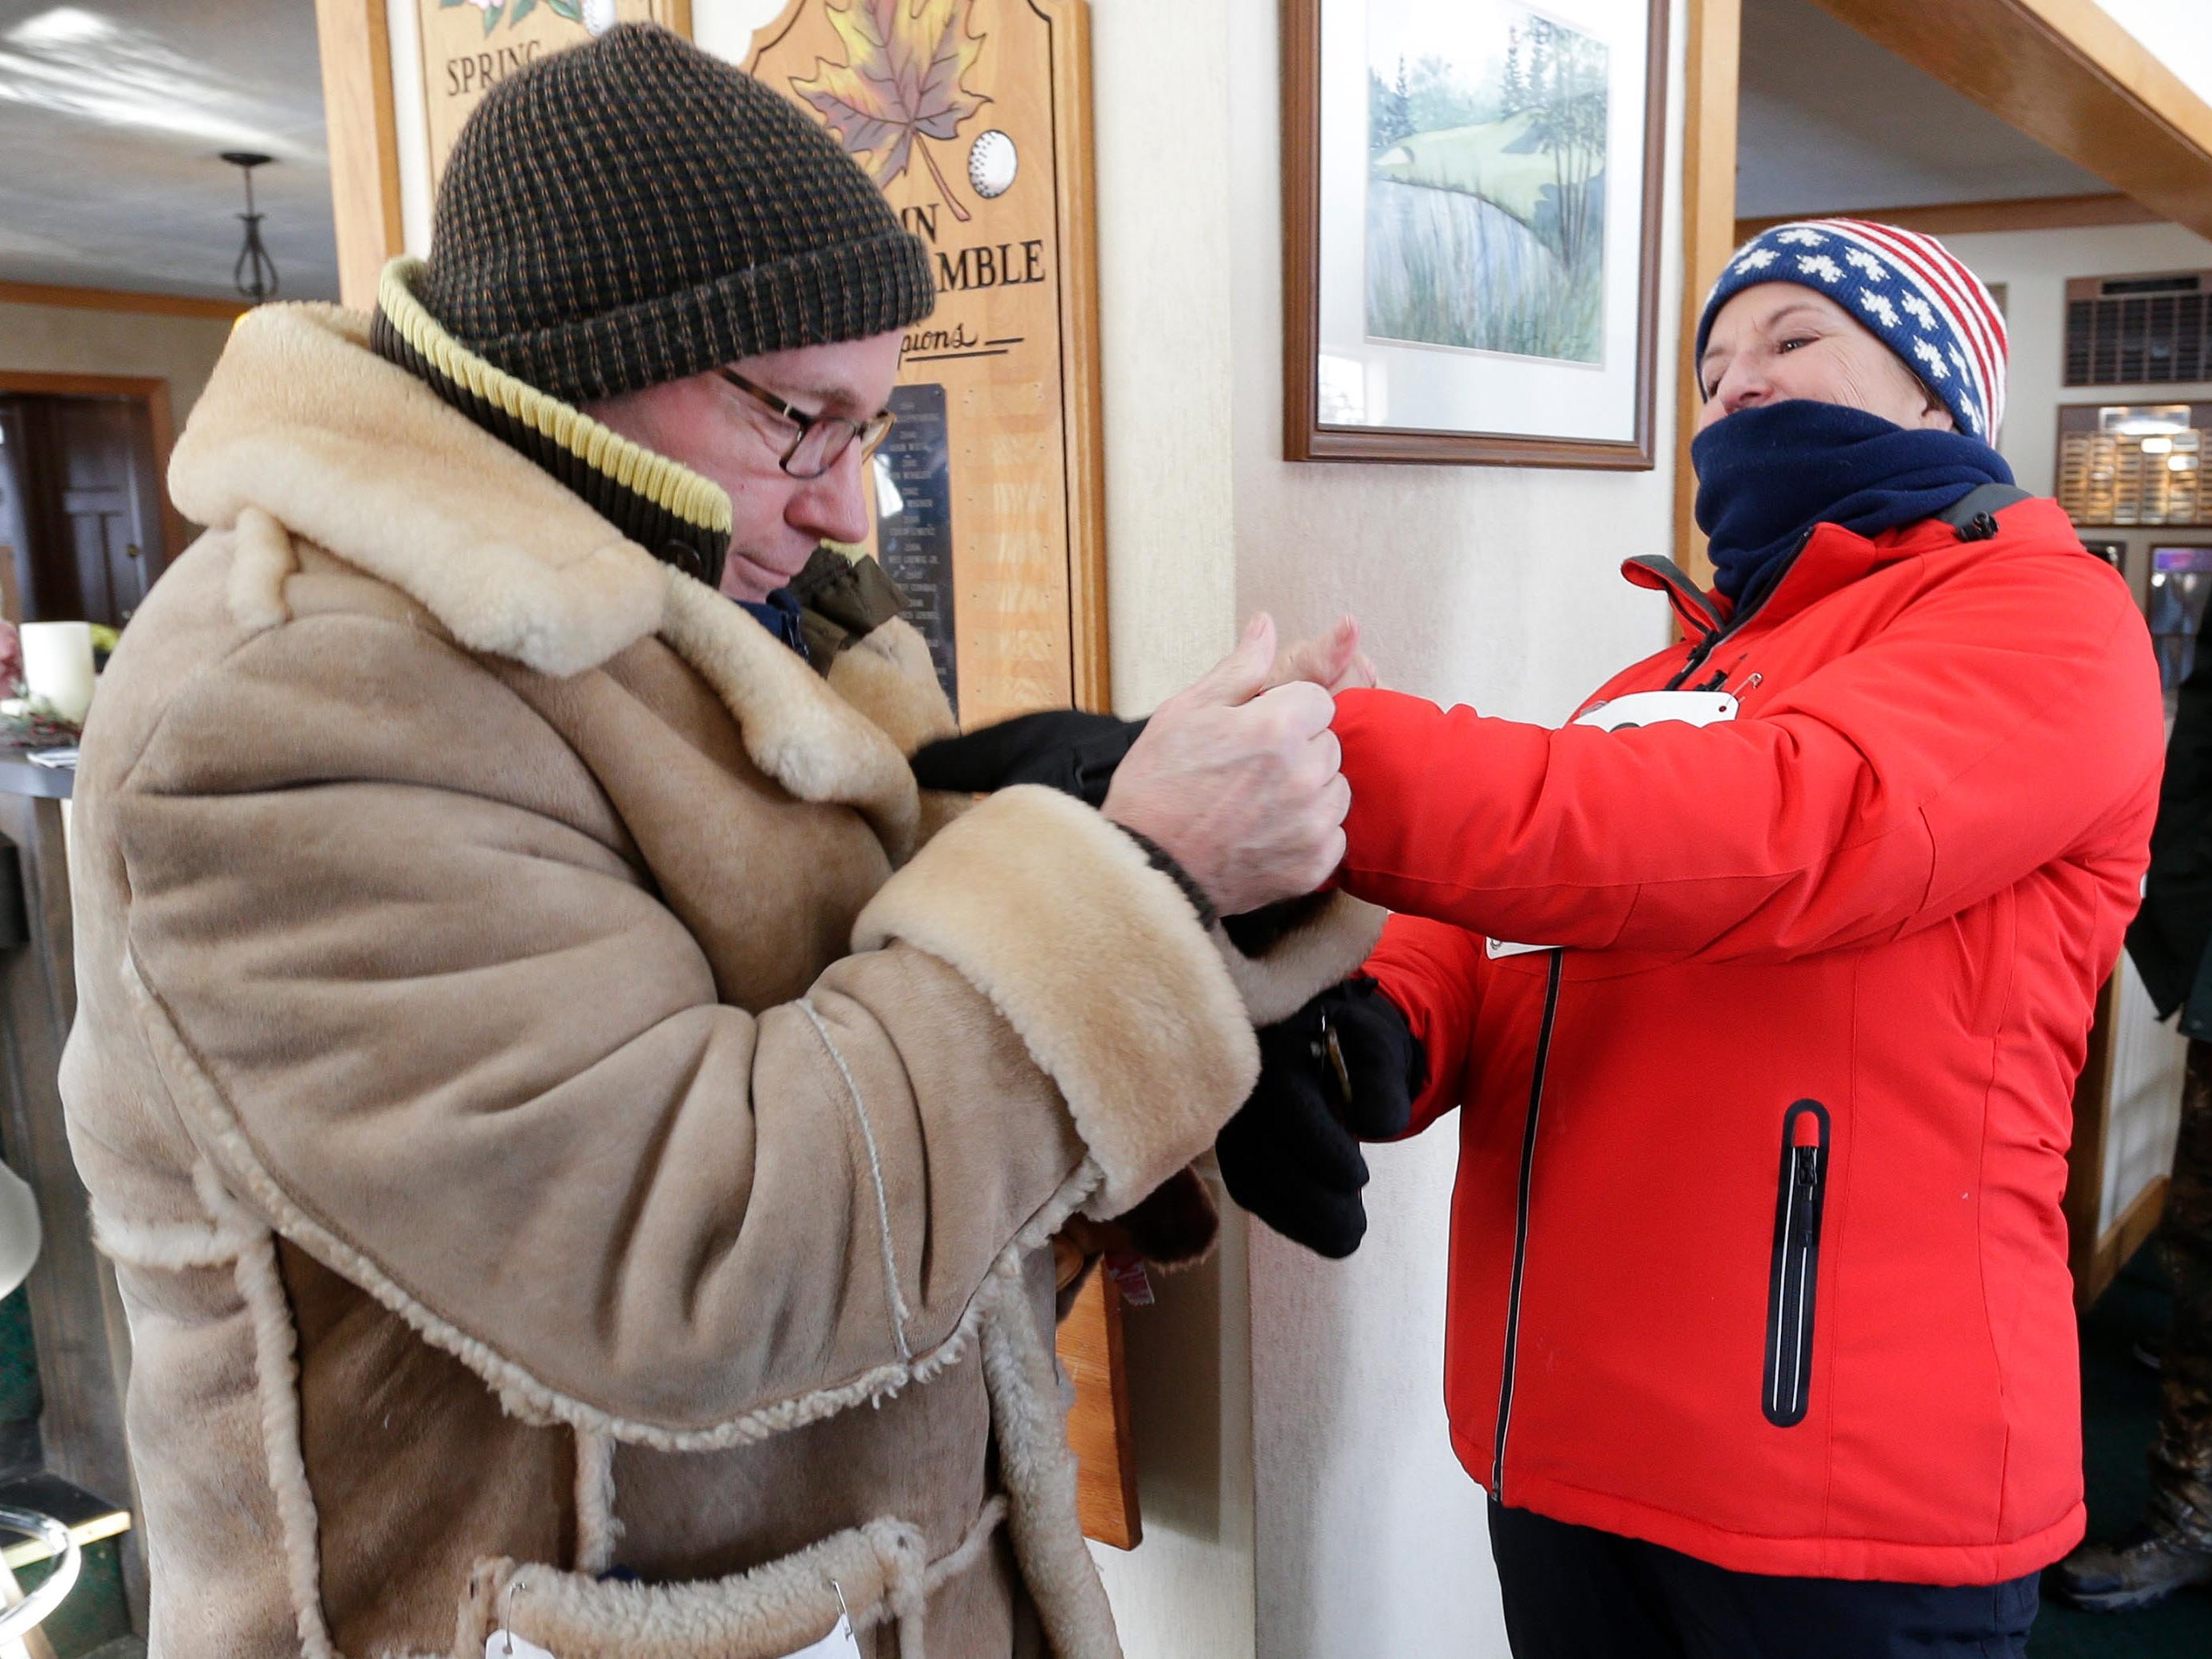 Thomas Liebl, left, helps his wife Lisa put her mittens on before the Schneelauf Run, Saturday, January 26, 2019, in Elkhart Lake, Wis.